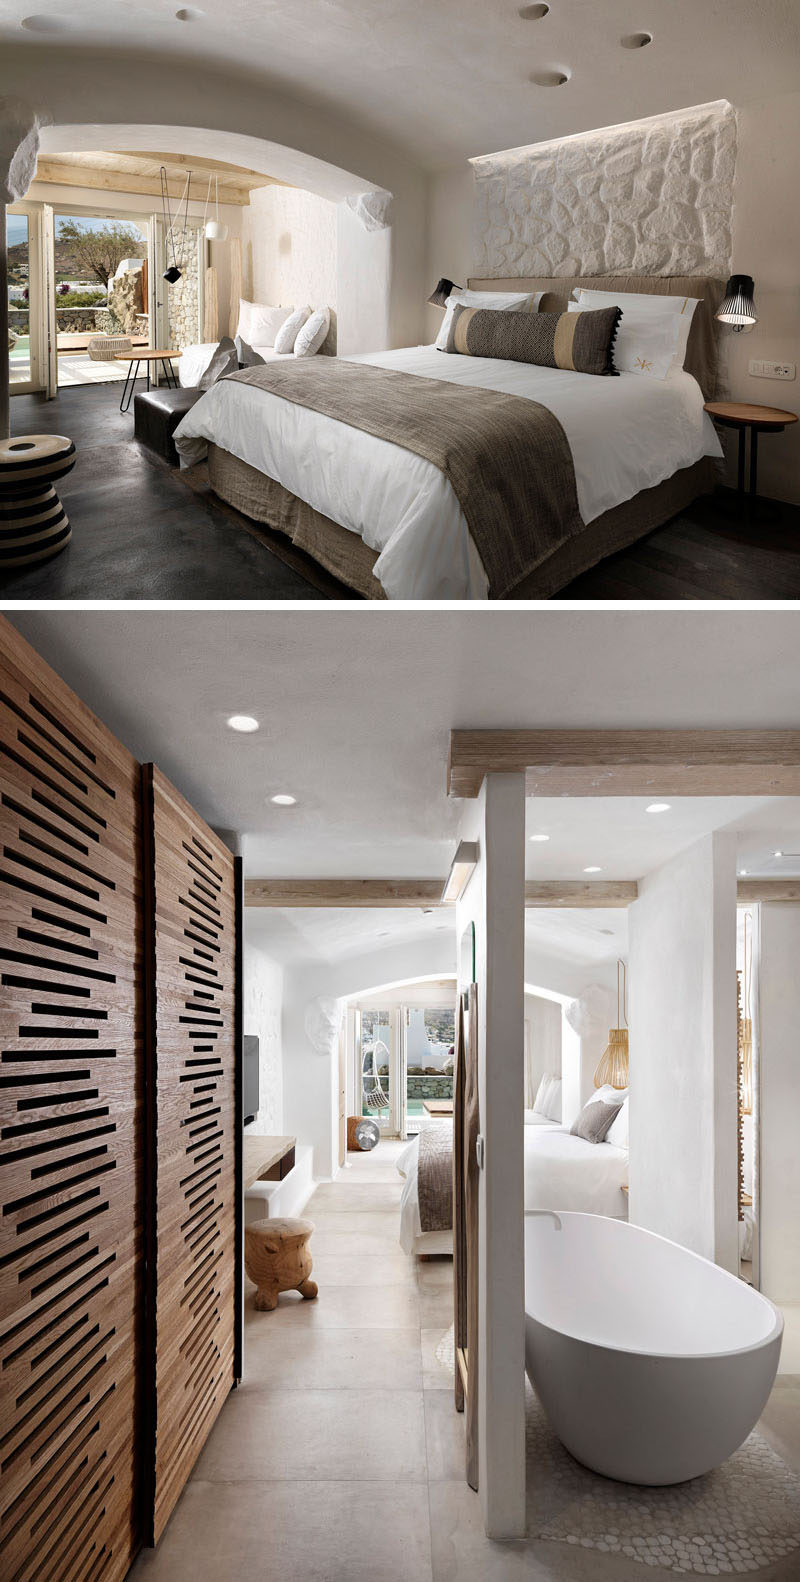 Hotel Room Designs: Kensho, A New Boutique Design Hotel Has Opened Its Doors